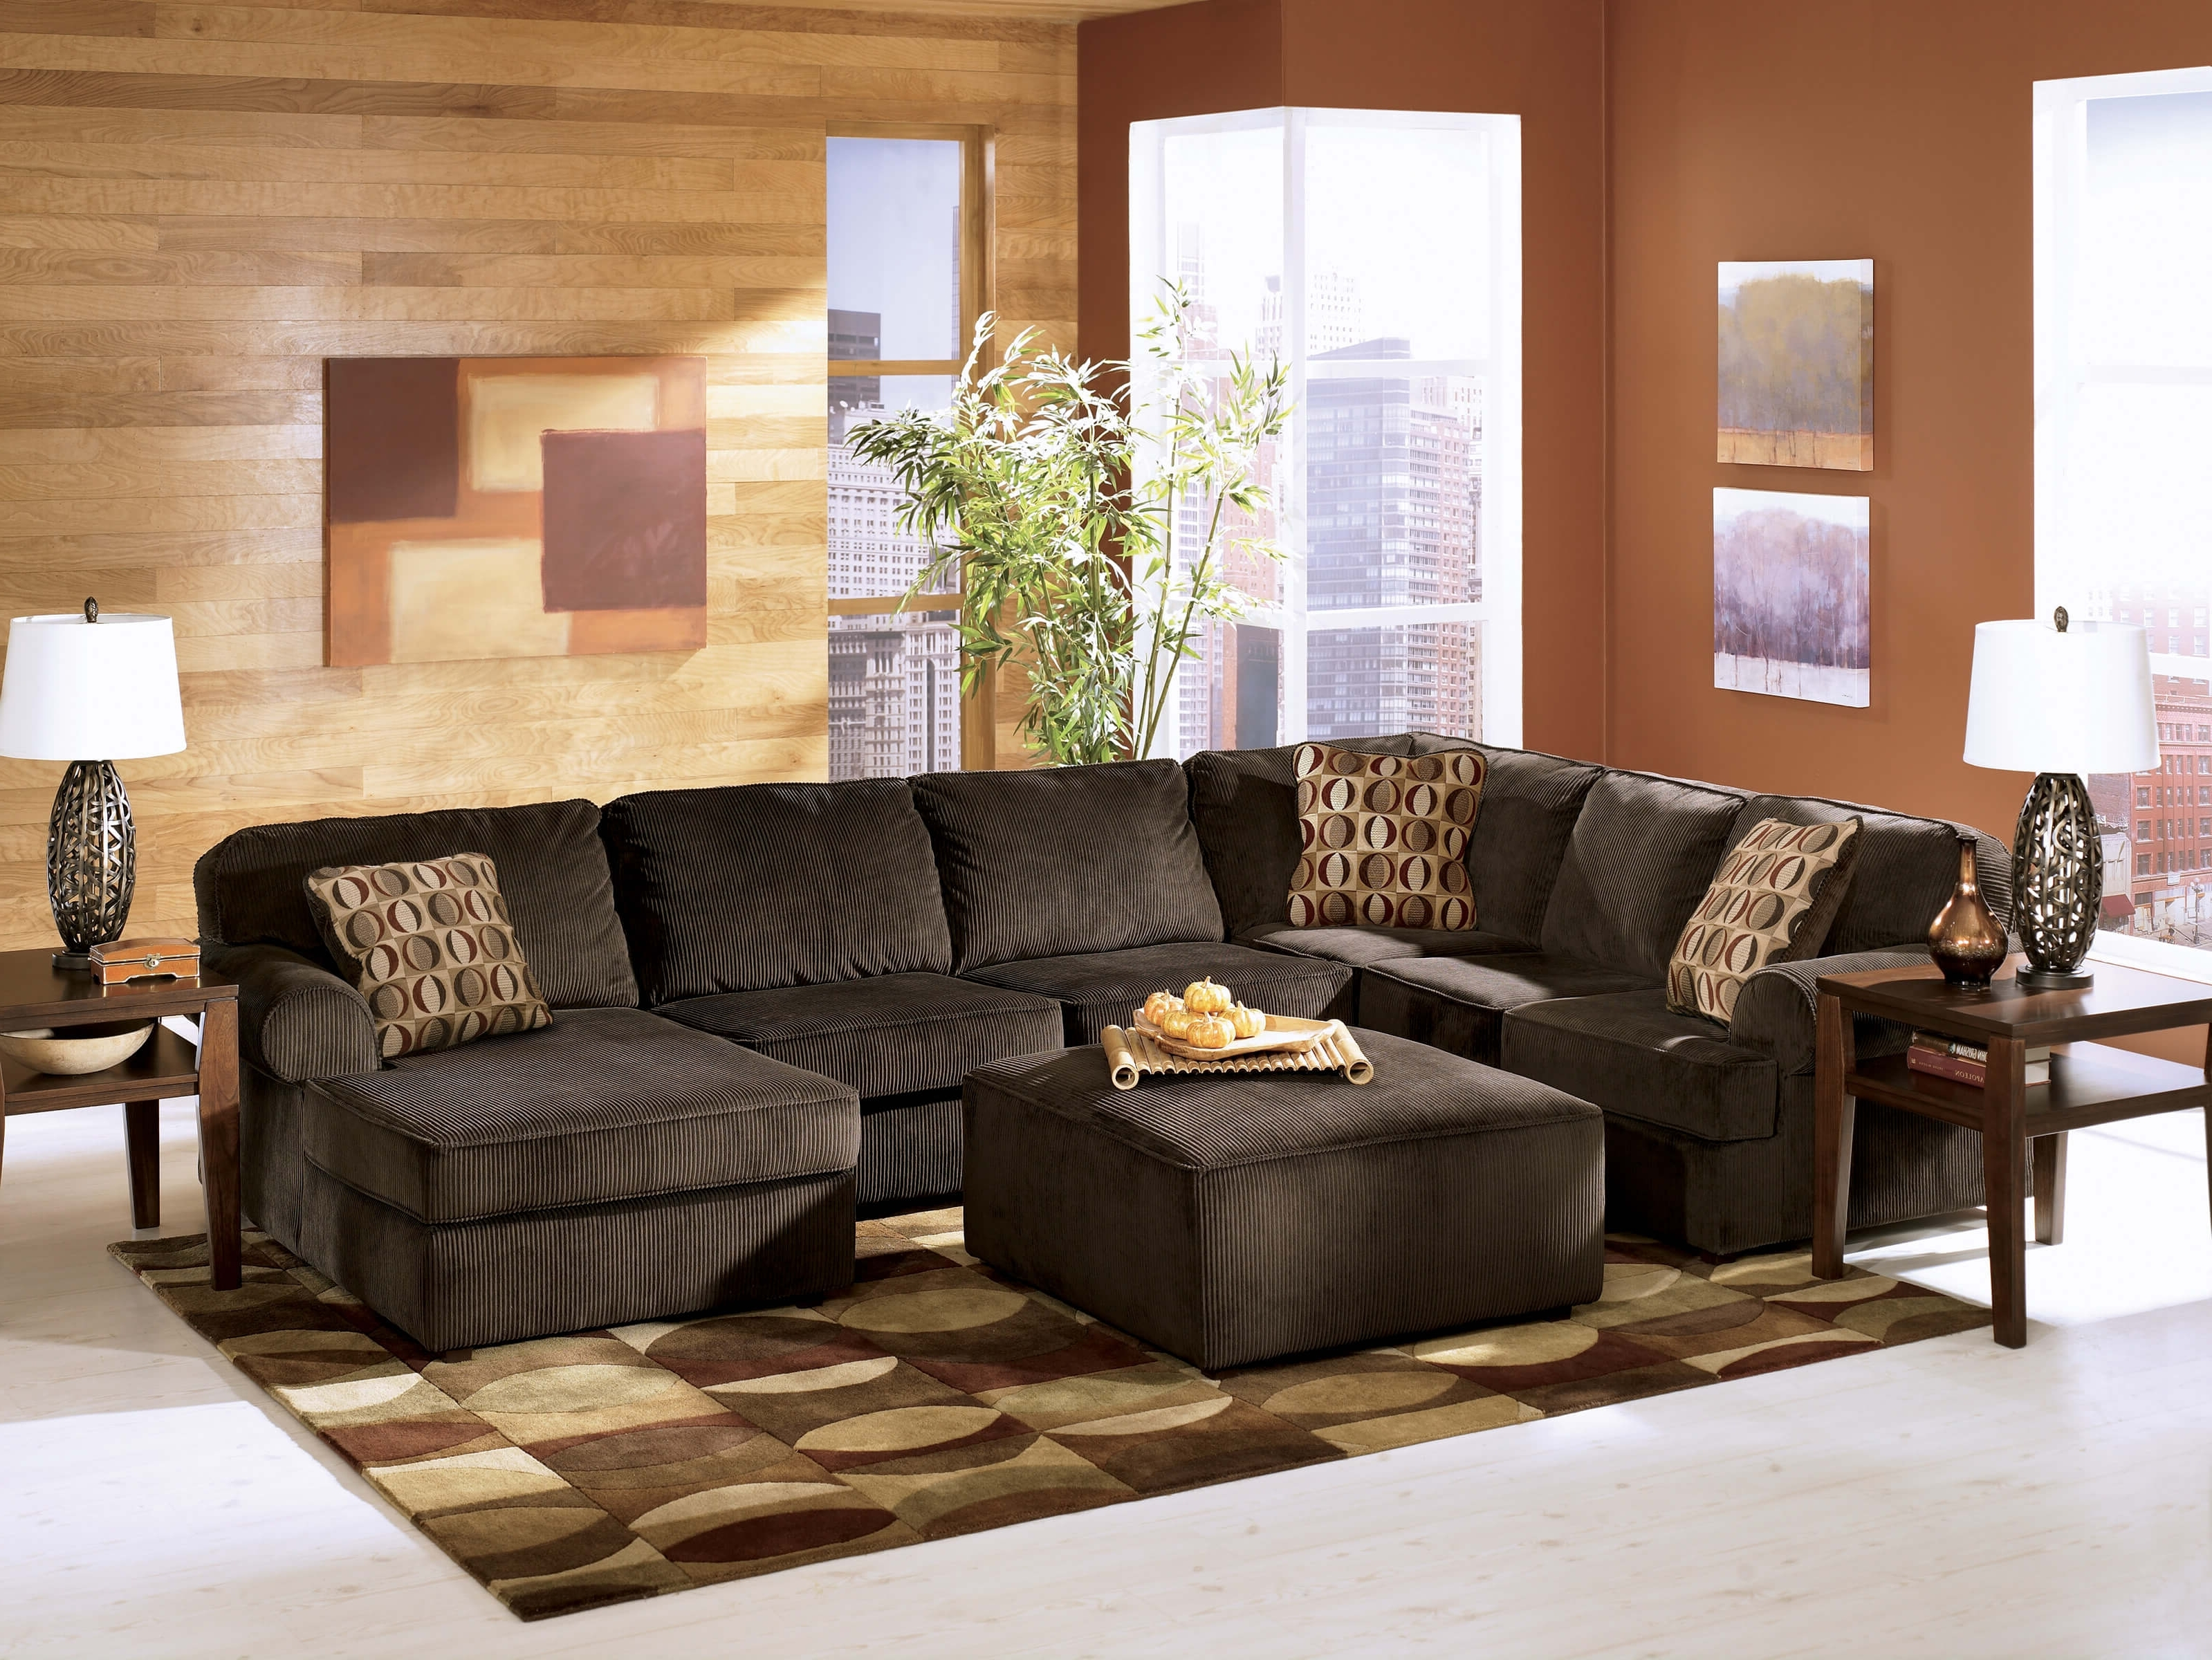 Sectional Sofa Sets (View 14 of 20)